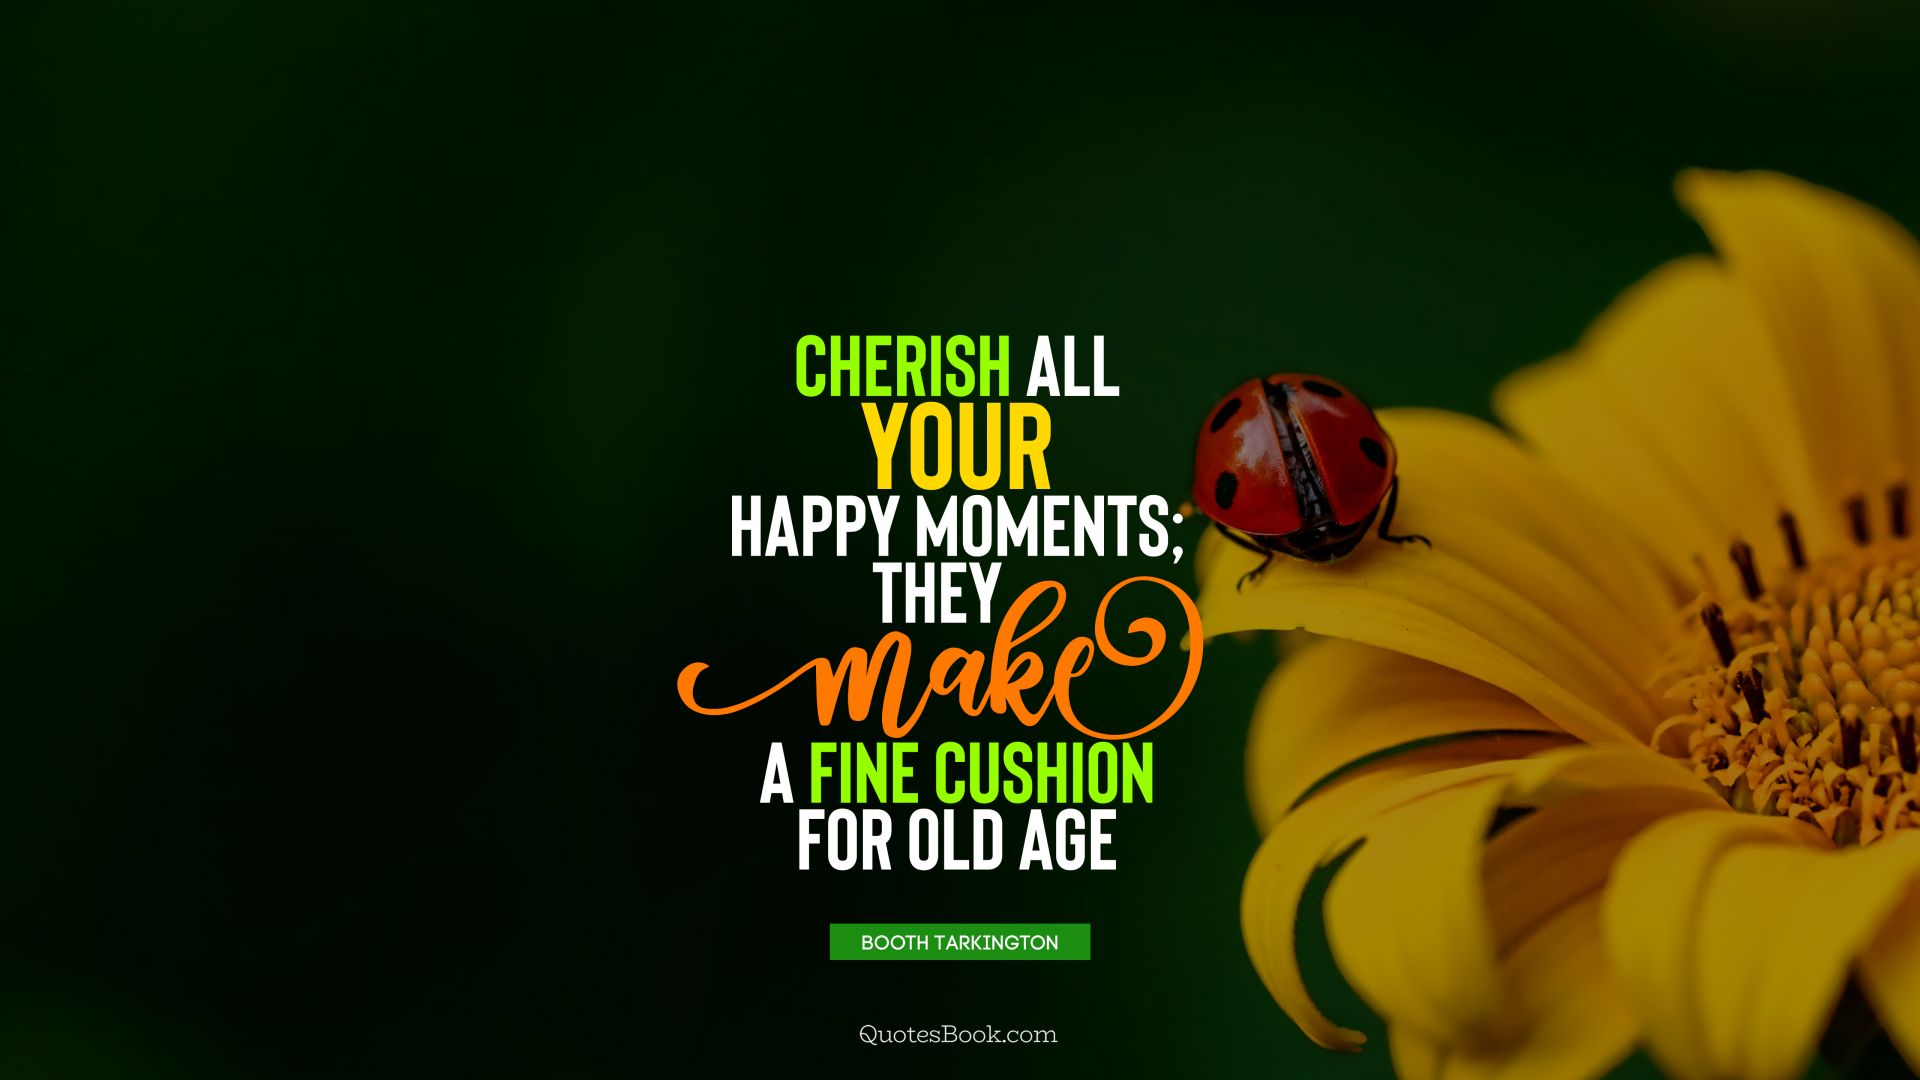 Cherish all your happy moments; they make a fine cushion for old age. - Quote by Booth Tarkington